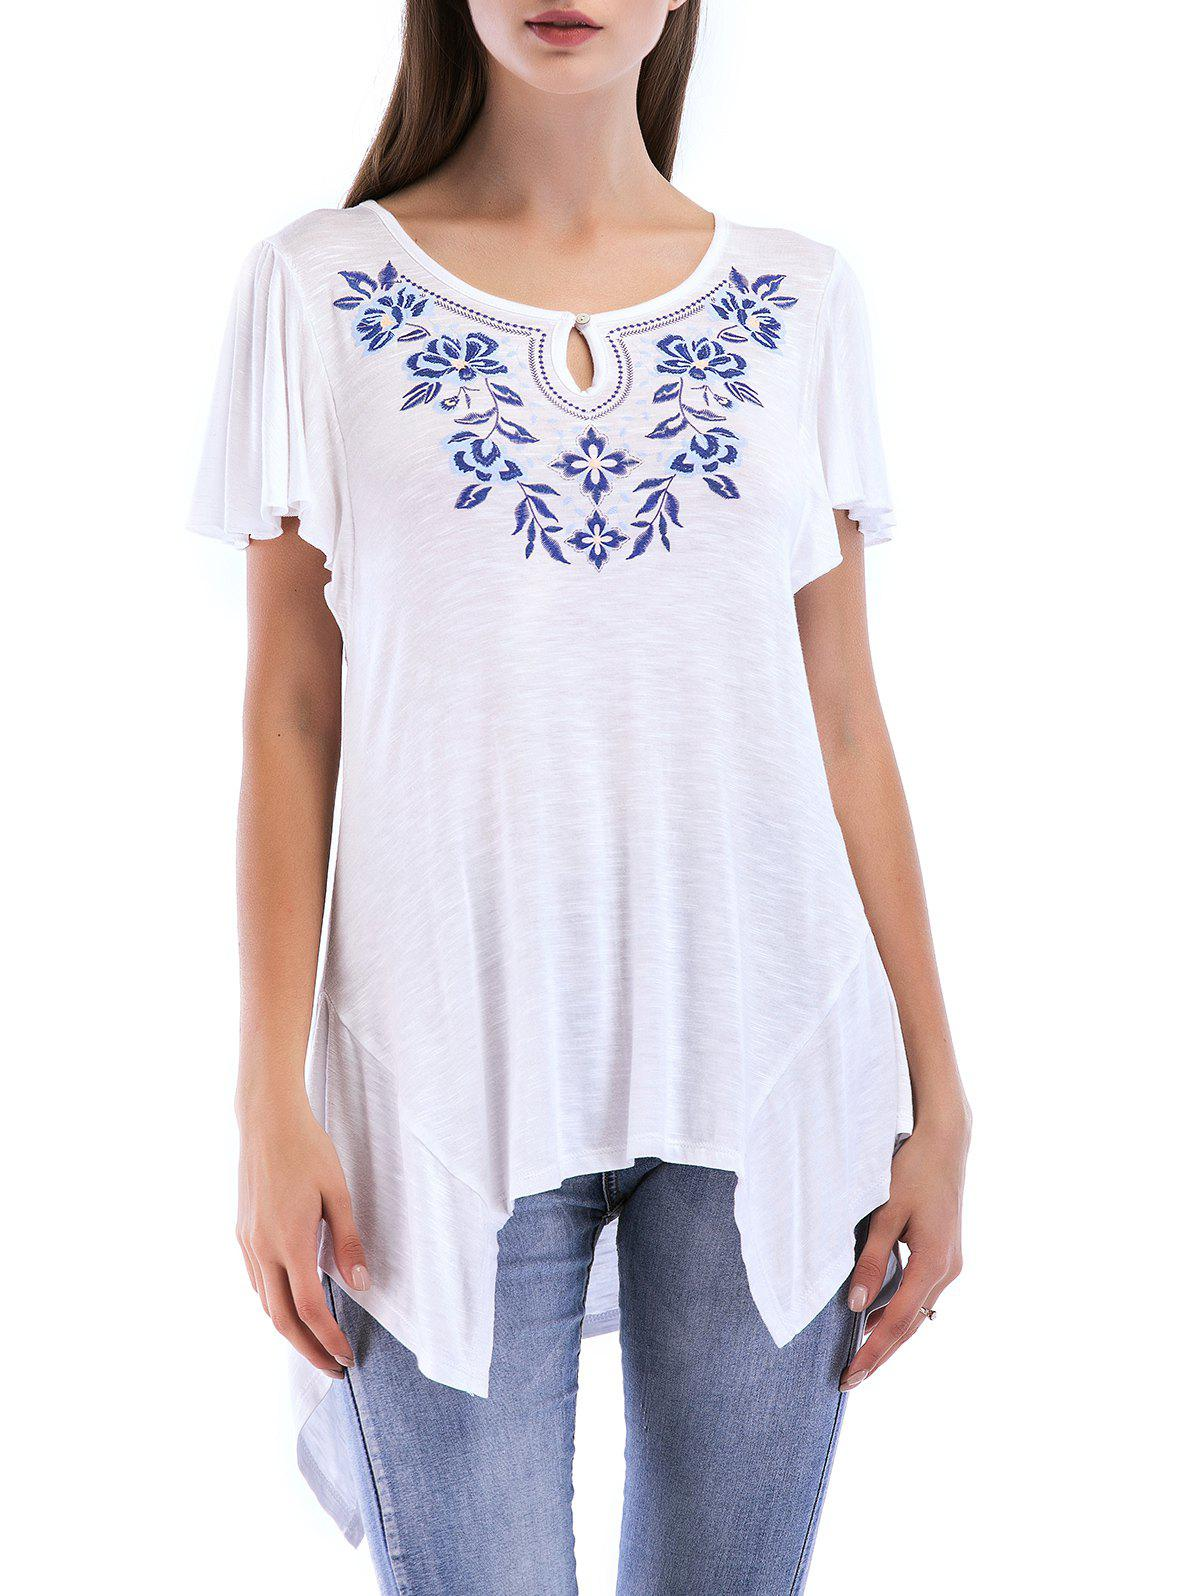 Pleated Short Sleeve Asymmetrical Top - WHITE M